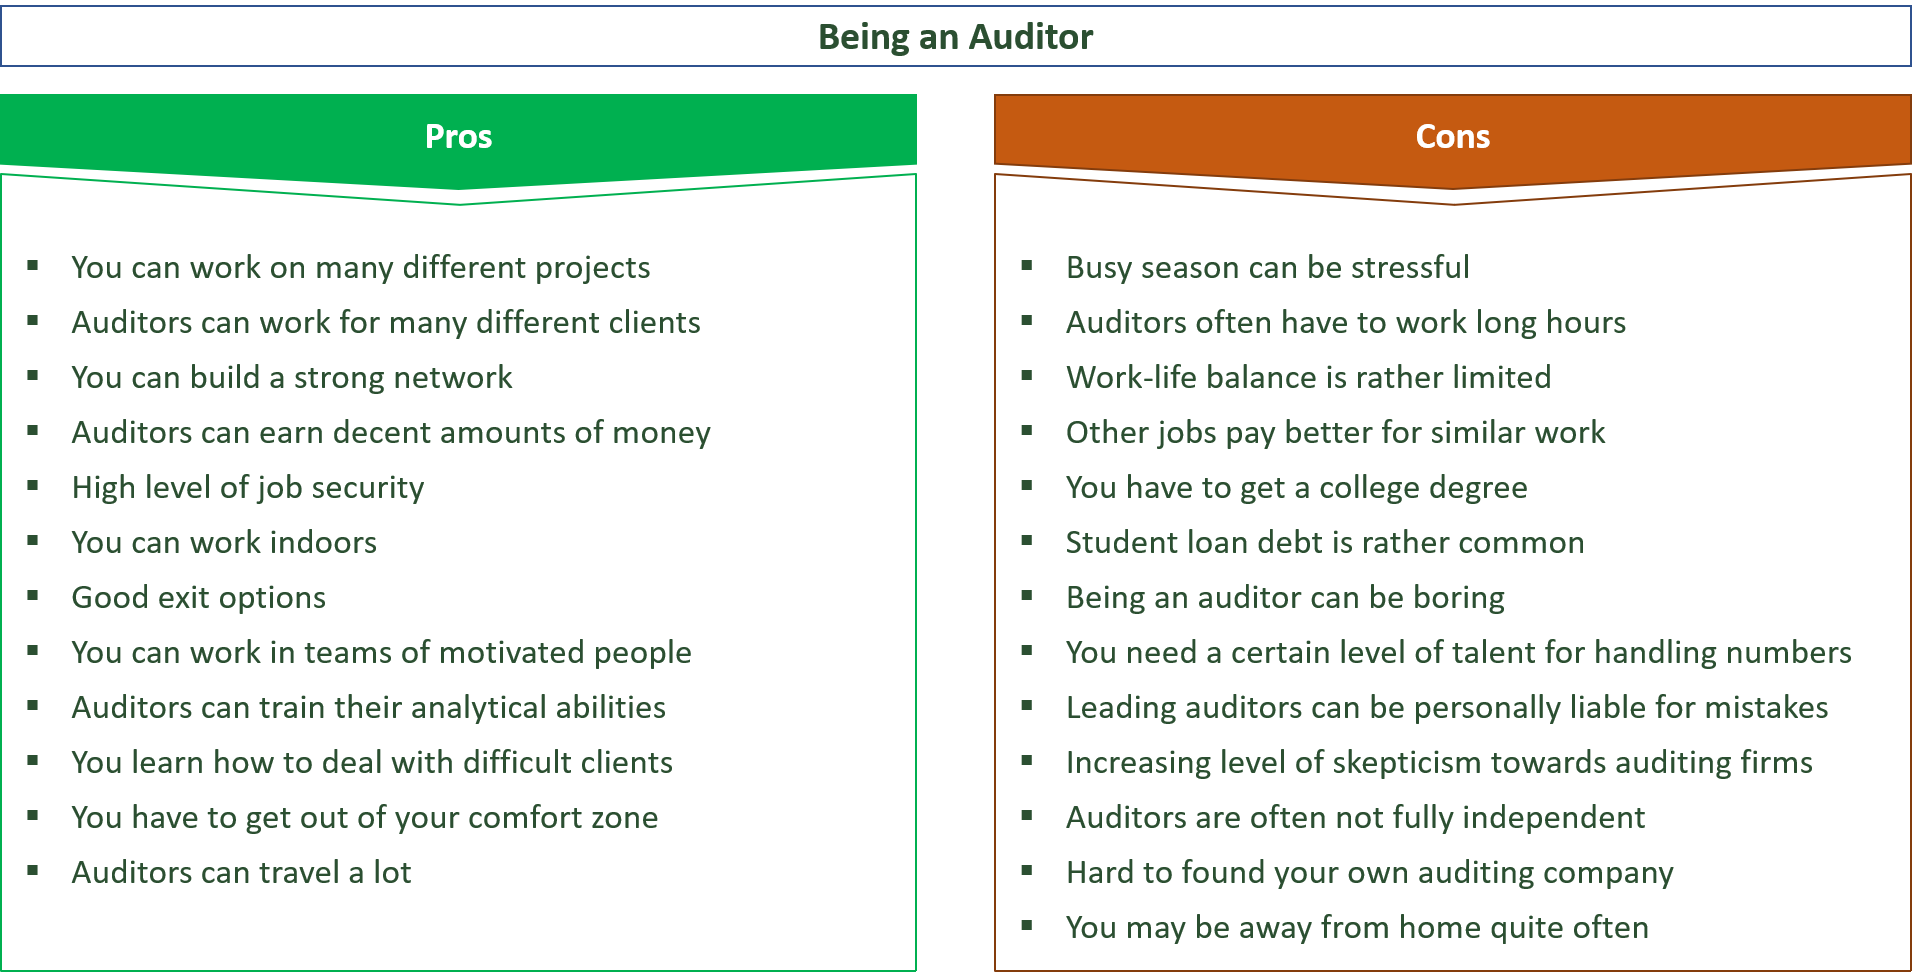 advantages and disadvantages of being an auditor